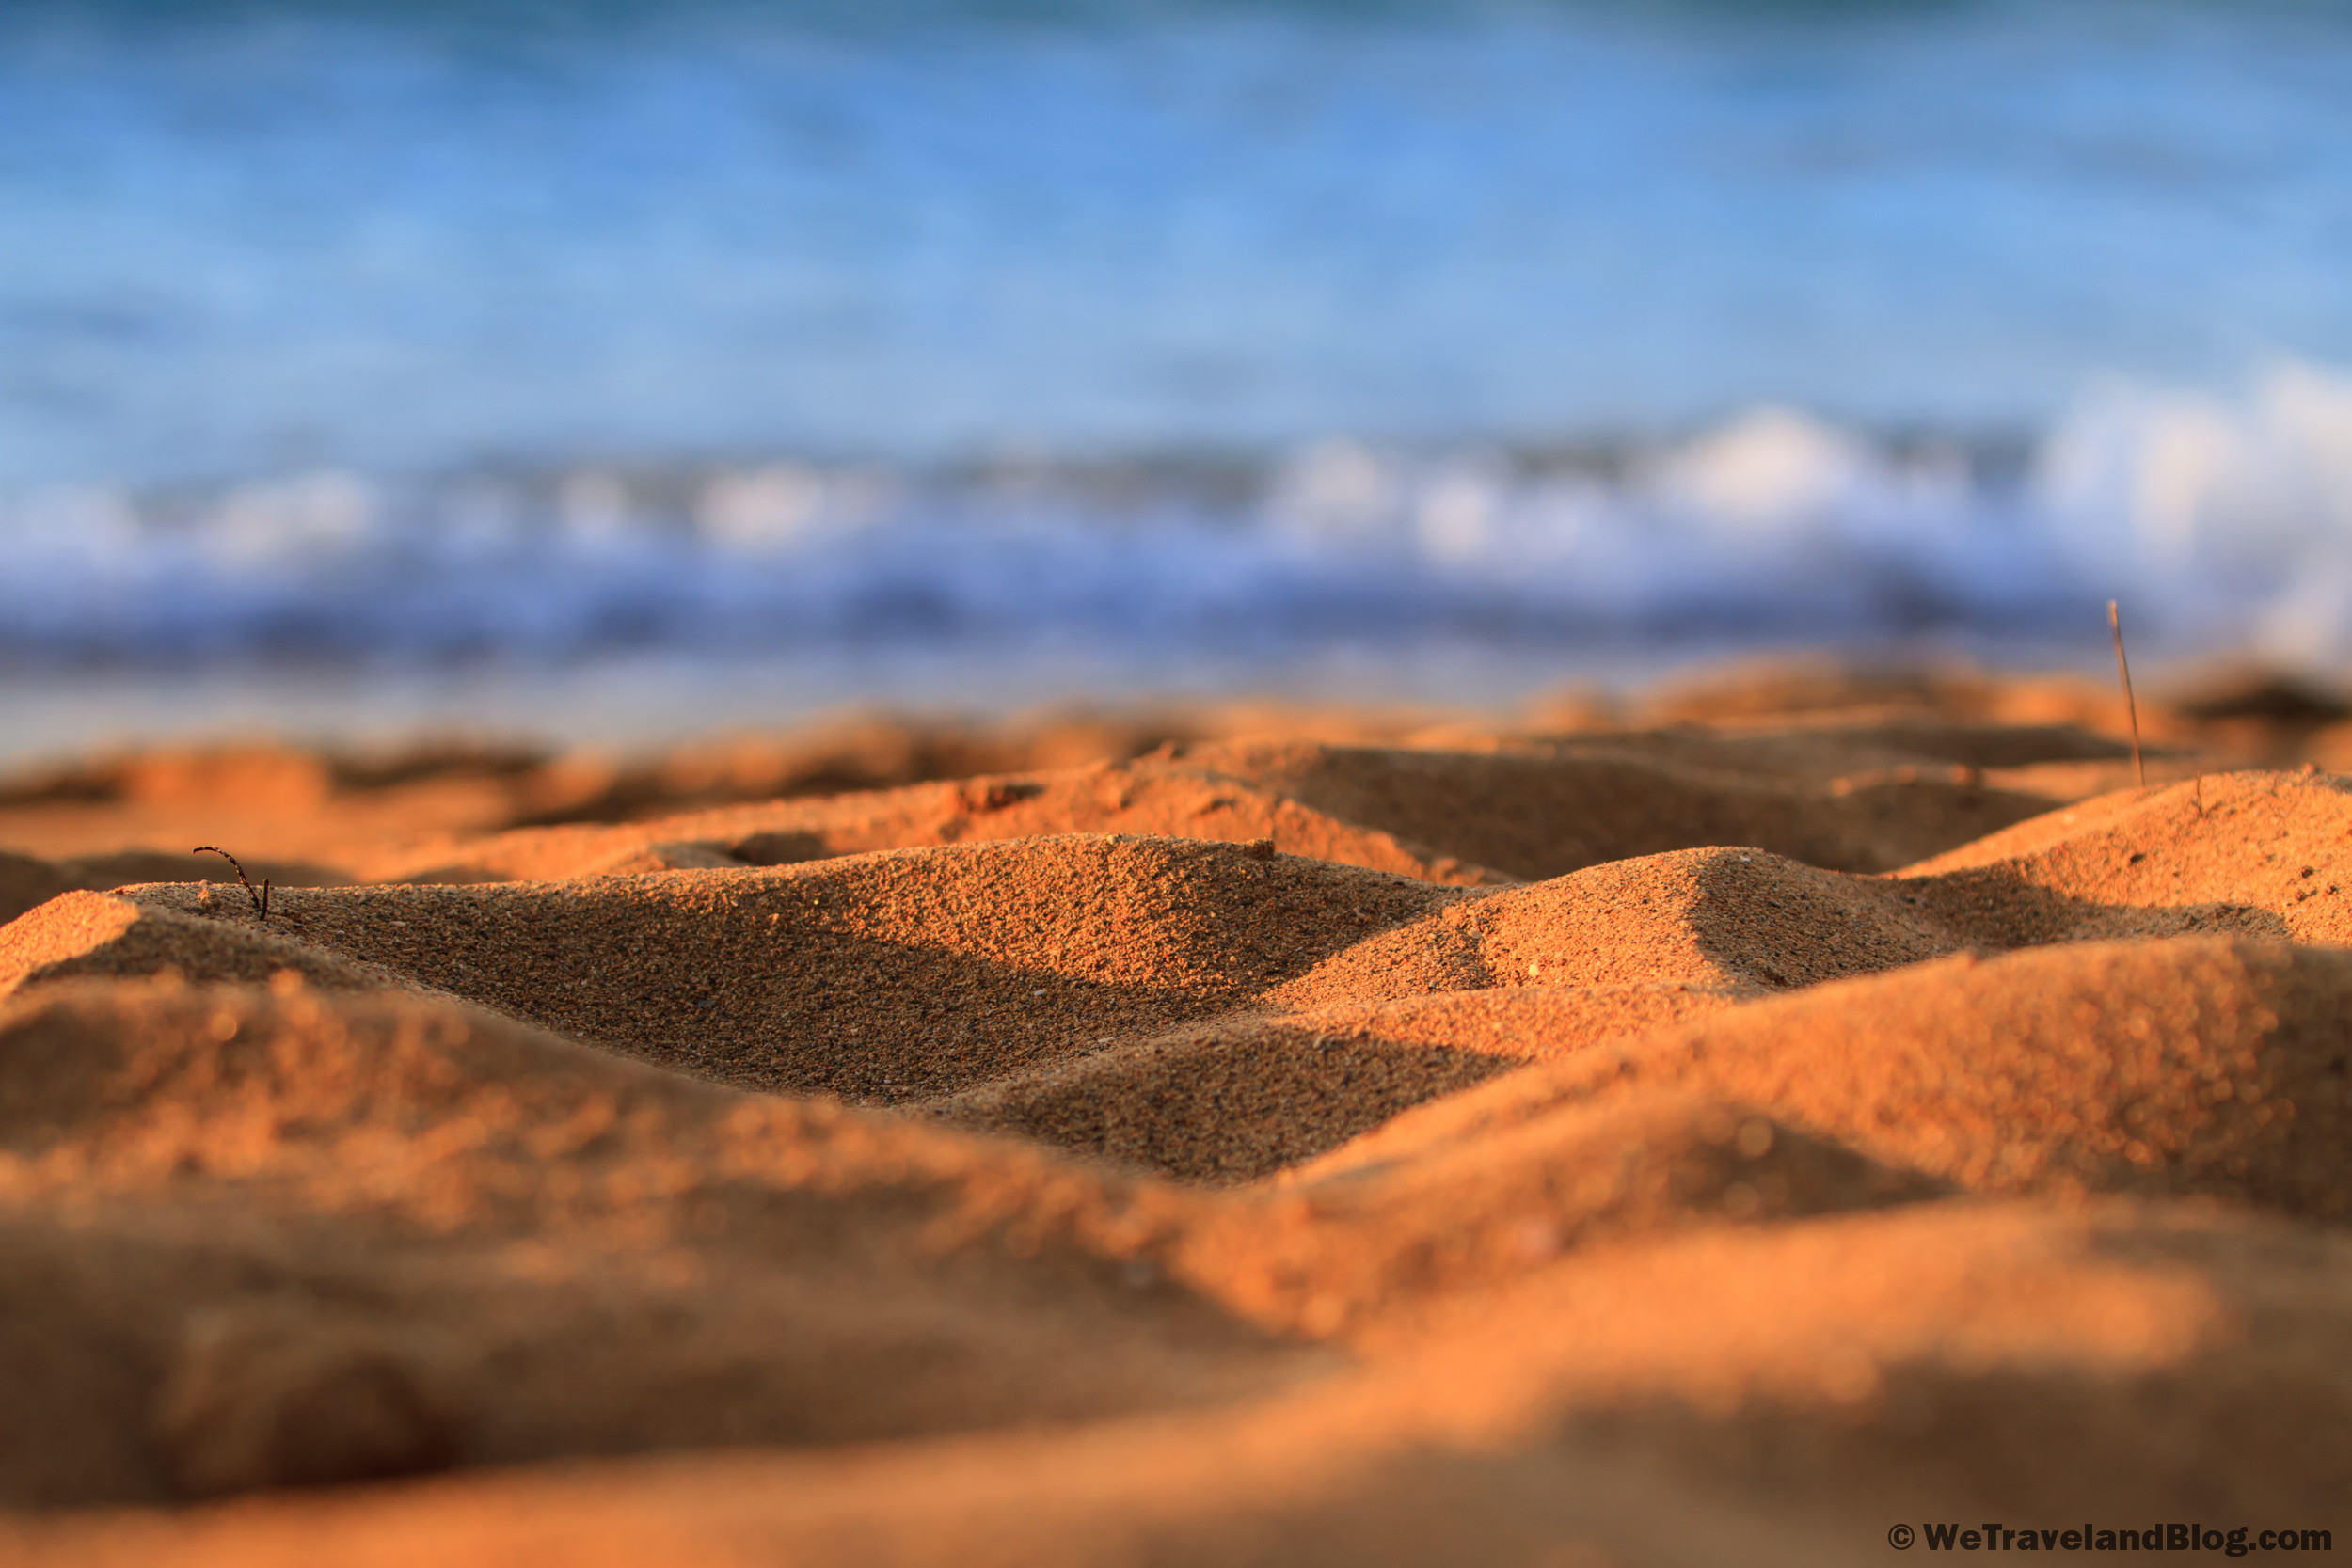 1111 Sand HD Wallpapers  Background Images  Wallpaper Abyss